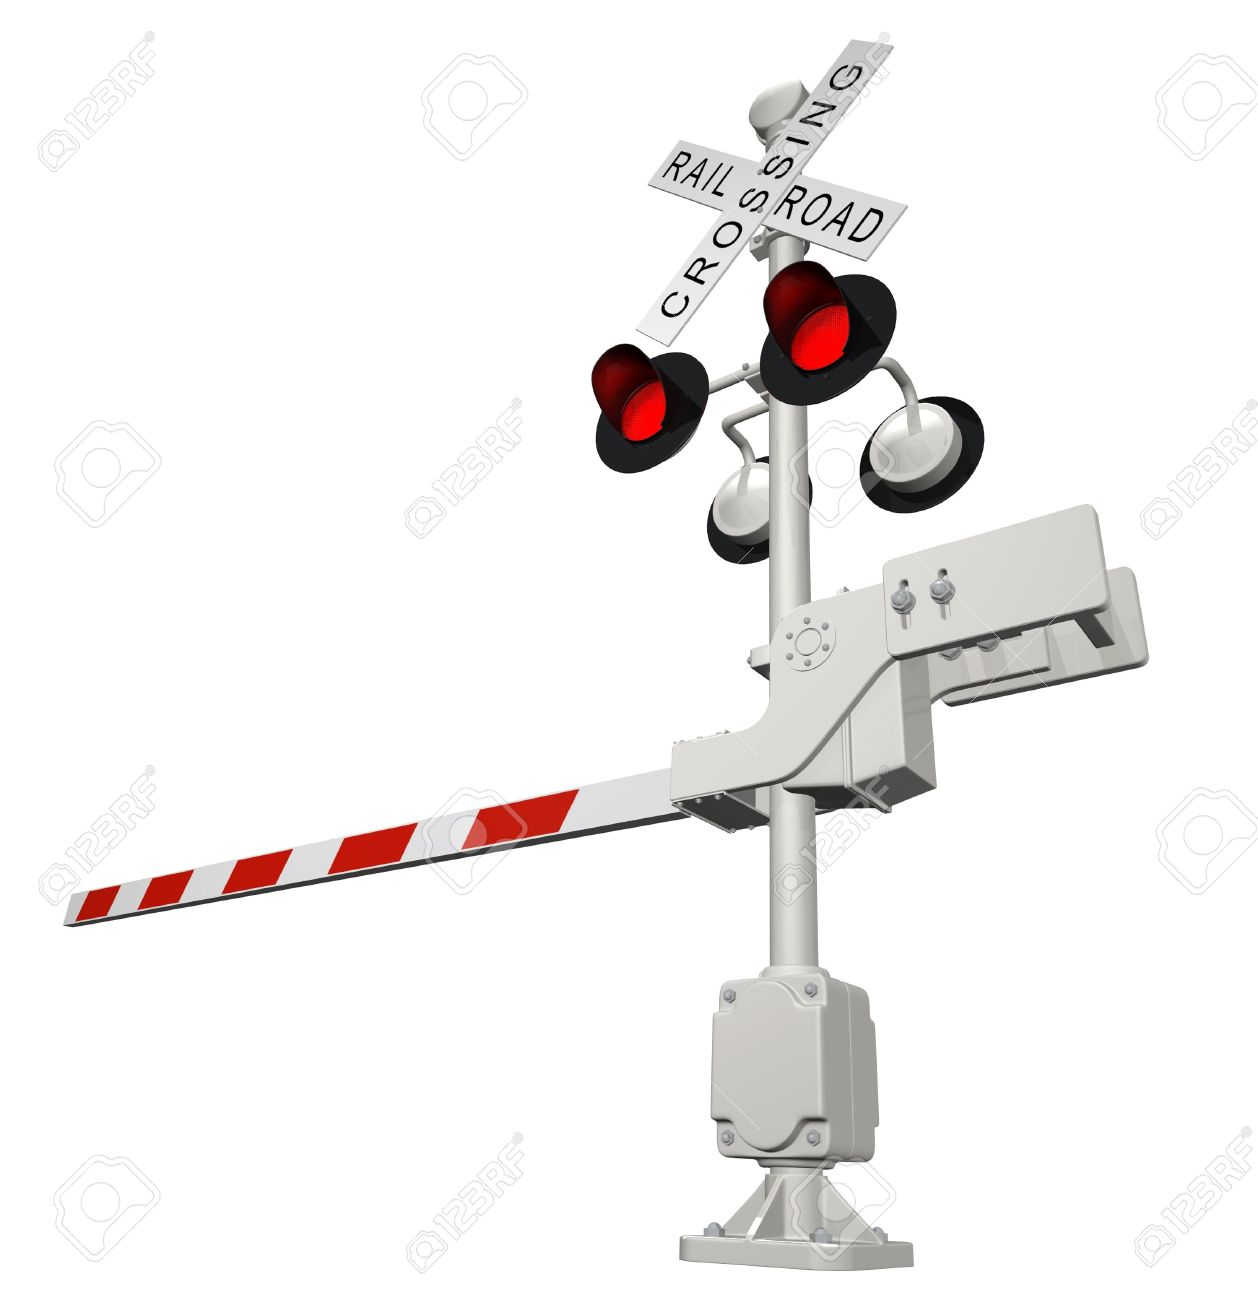 Railroad crossing Stock Photo - 6472846